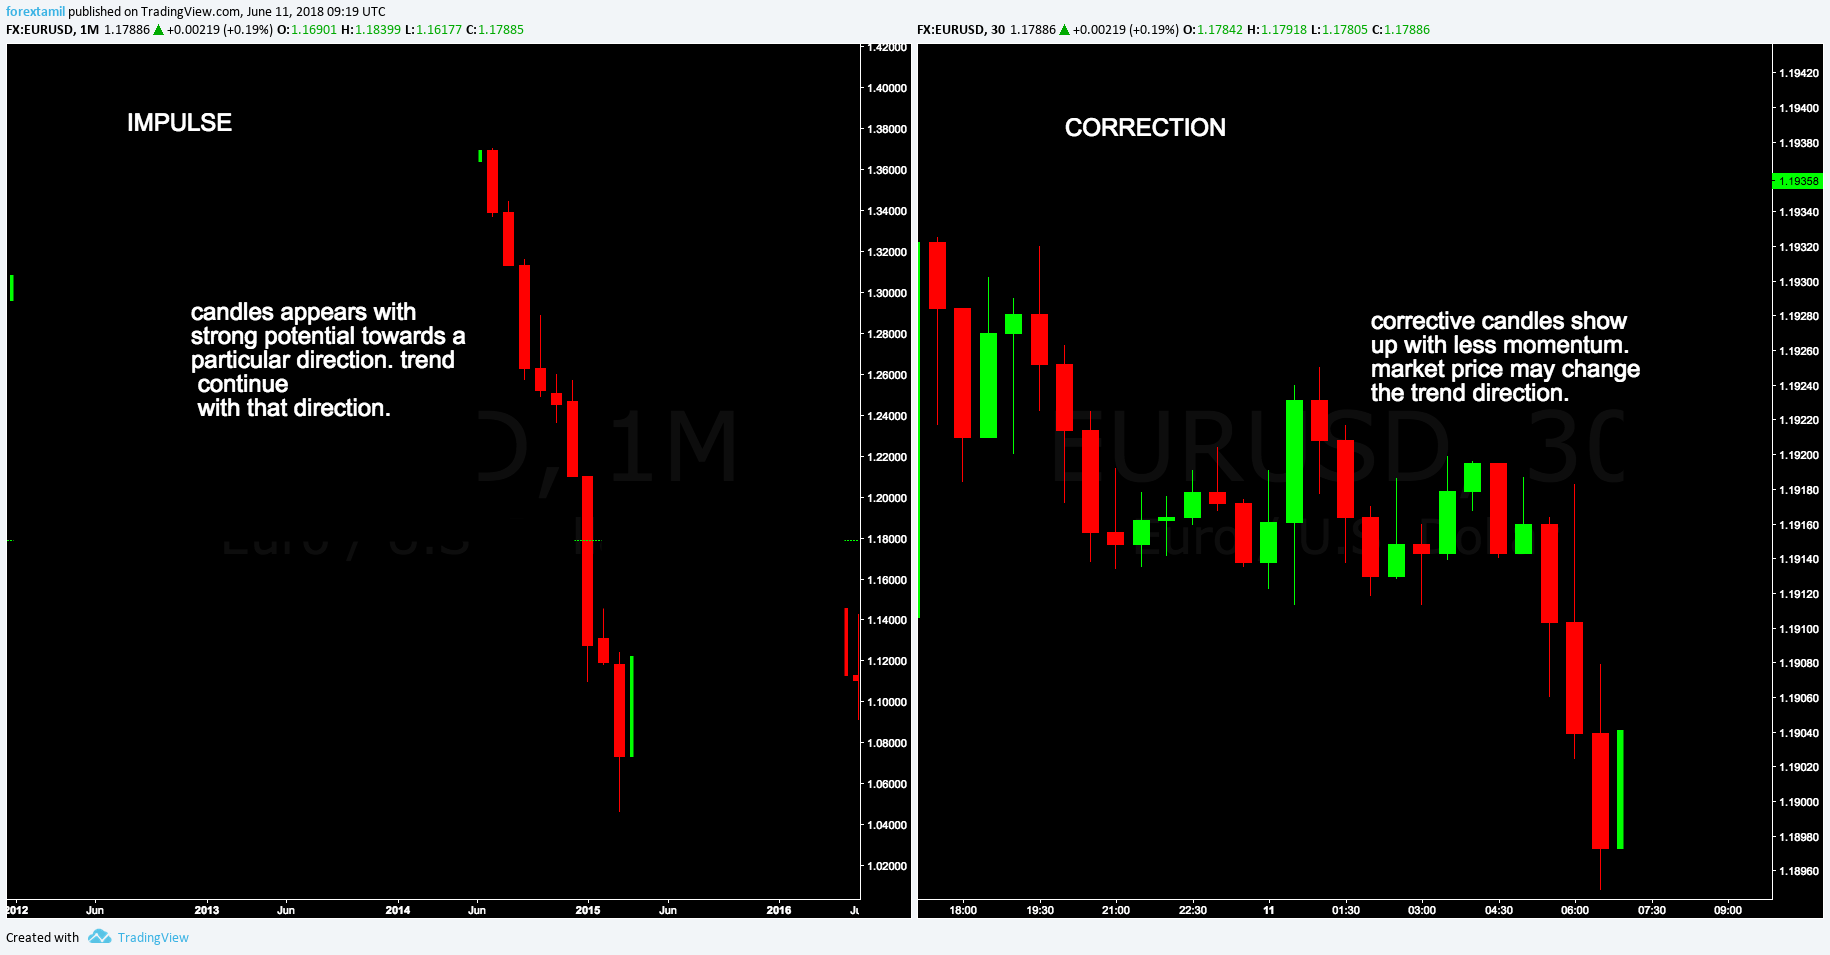 BASIC DIFFERENCE BETWEEN IMPULSE AND CORRECTION